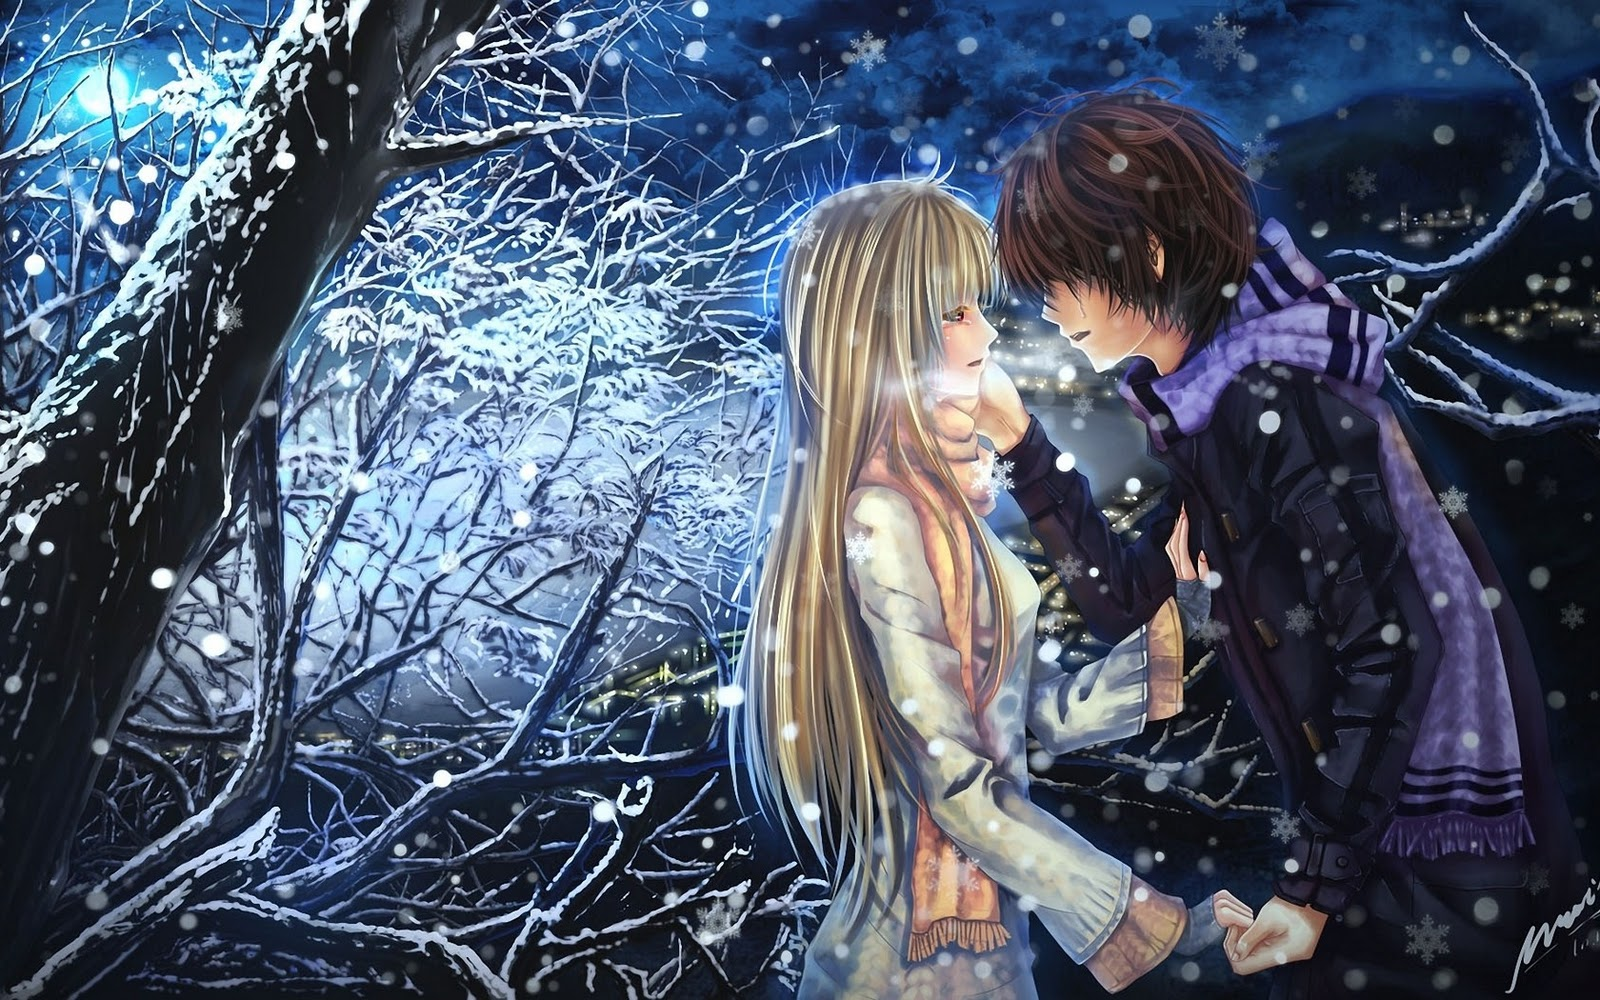 Wallpaper Boy In Love : A2Z Wallpapers: Anime couples In Love Wallpapers